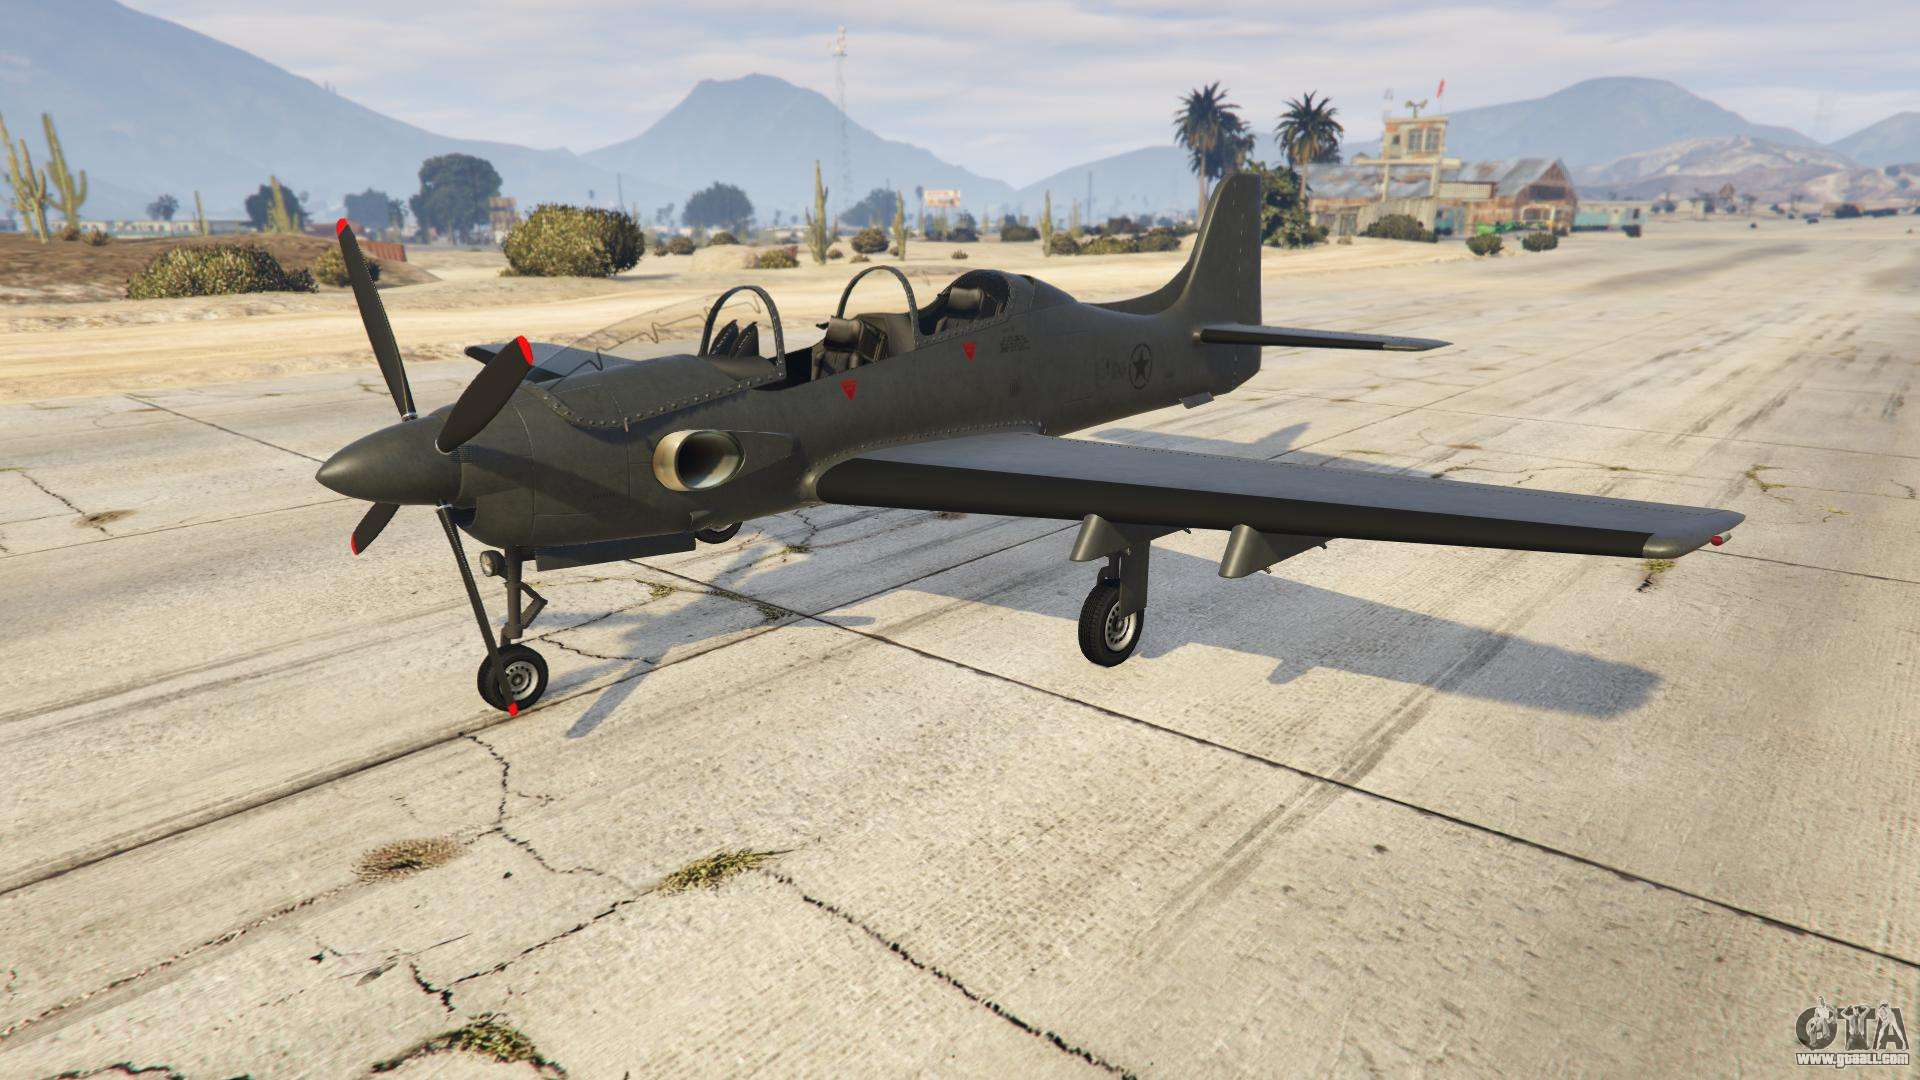 Western Company Rogue from GTA Online